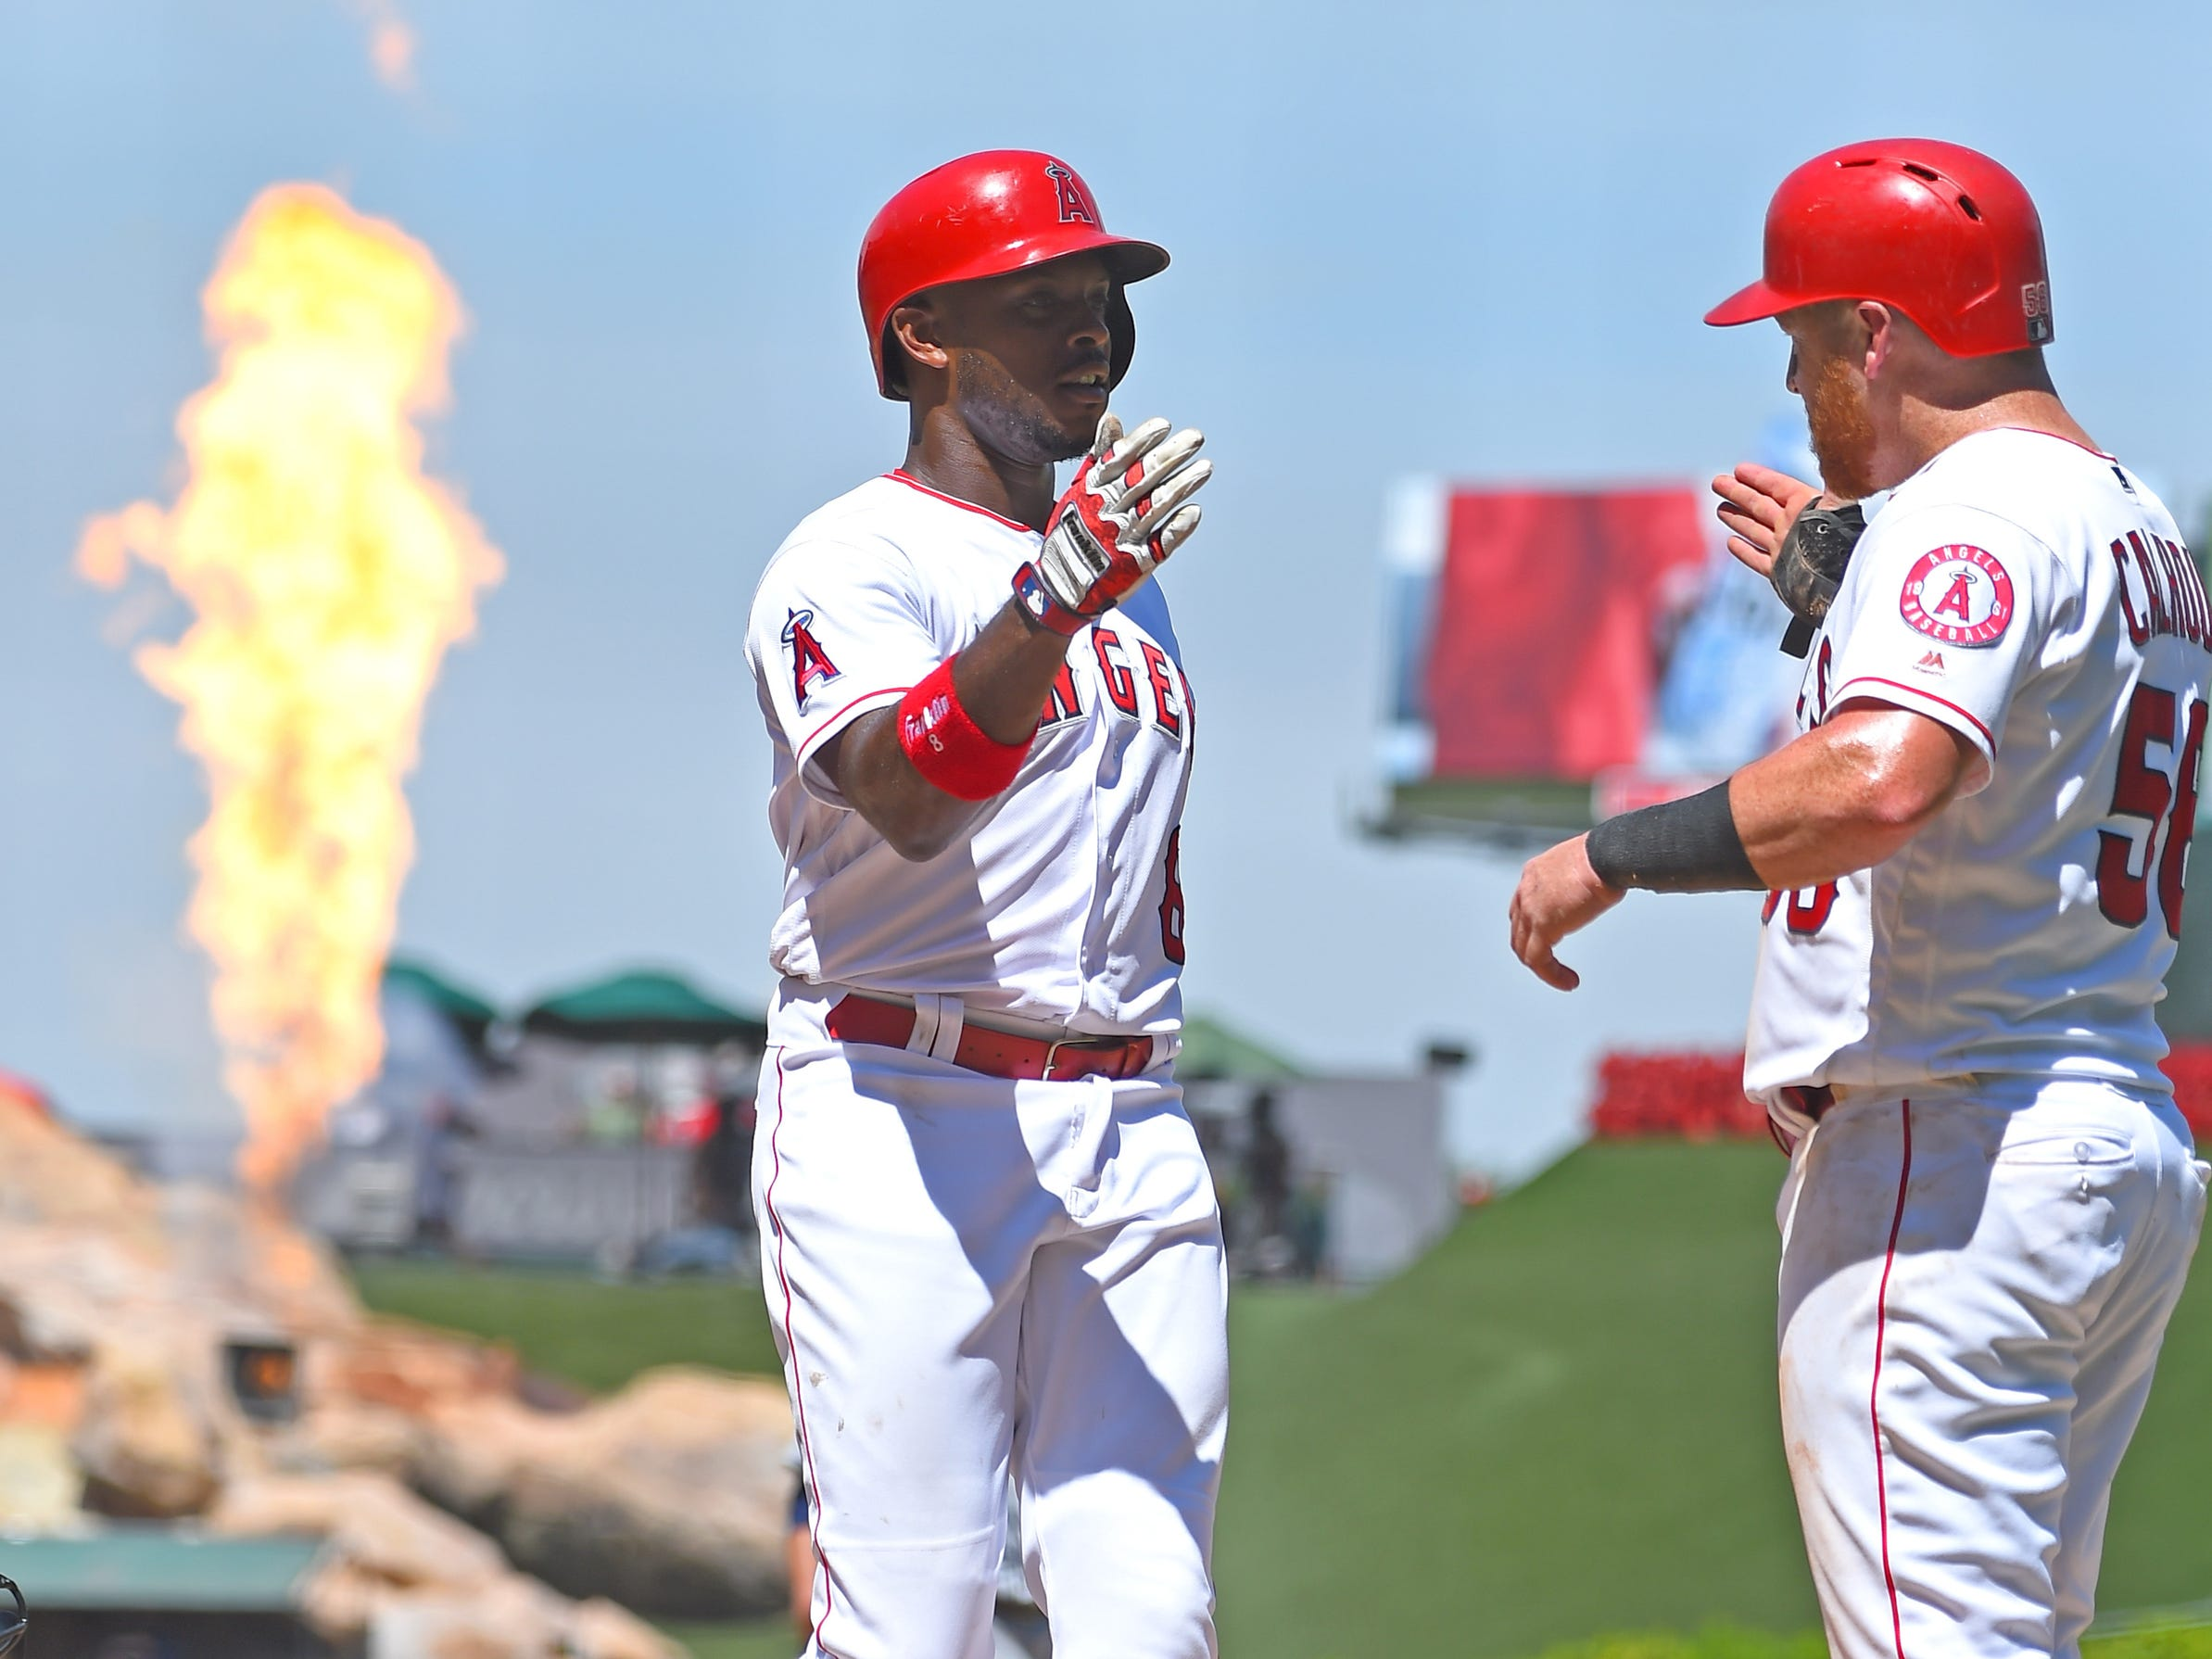 Los Angeles Angels left fielder Justin Upton (8) is greeted by Los Angeles Angels right fielder Kole Calhoun (56) after a two run home run in the fifth inning against the Detroit Tigers at Angel Stadium of Anaheim on August 8, 2018.